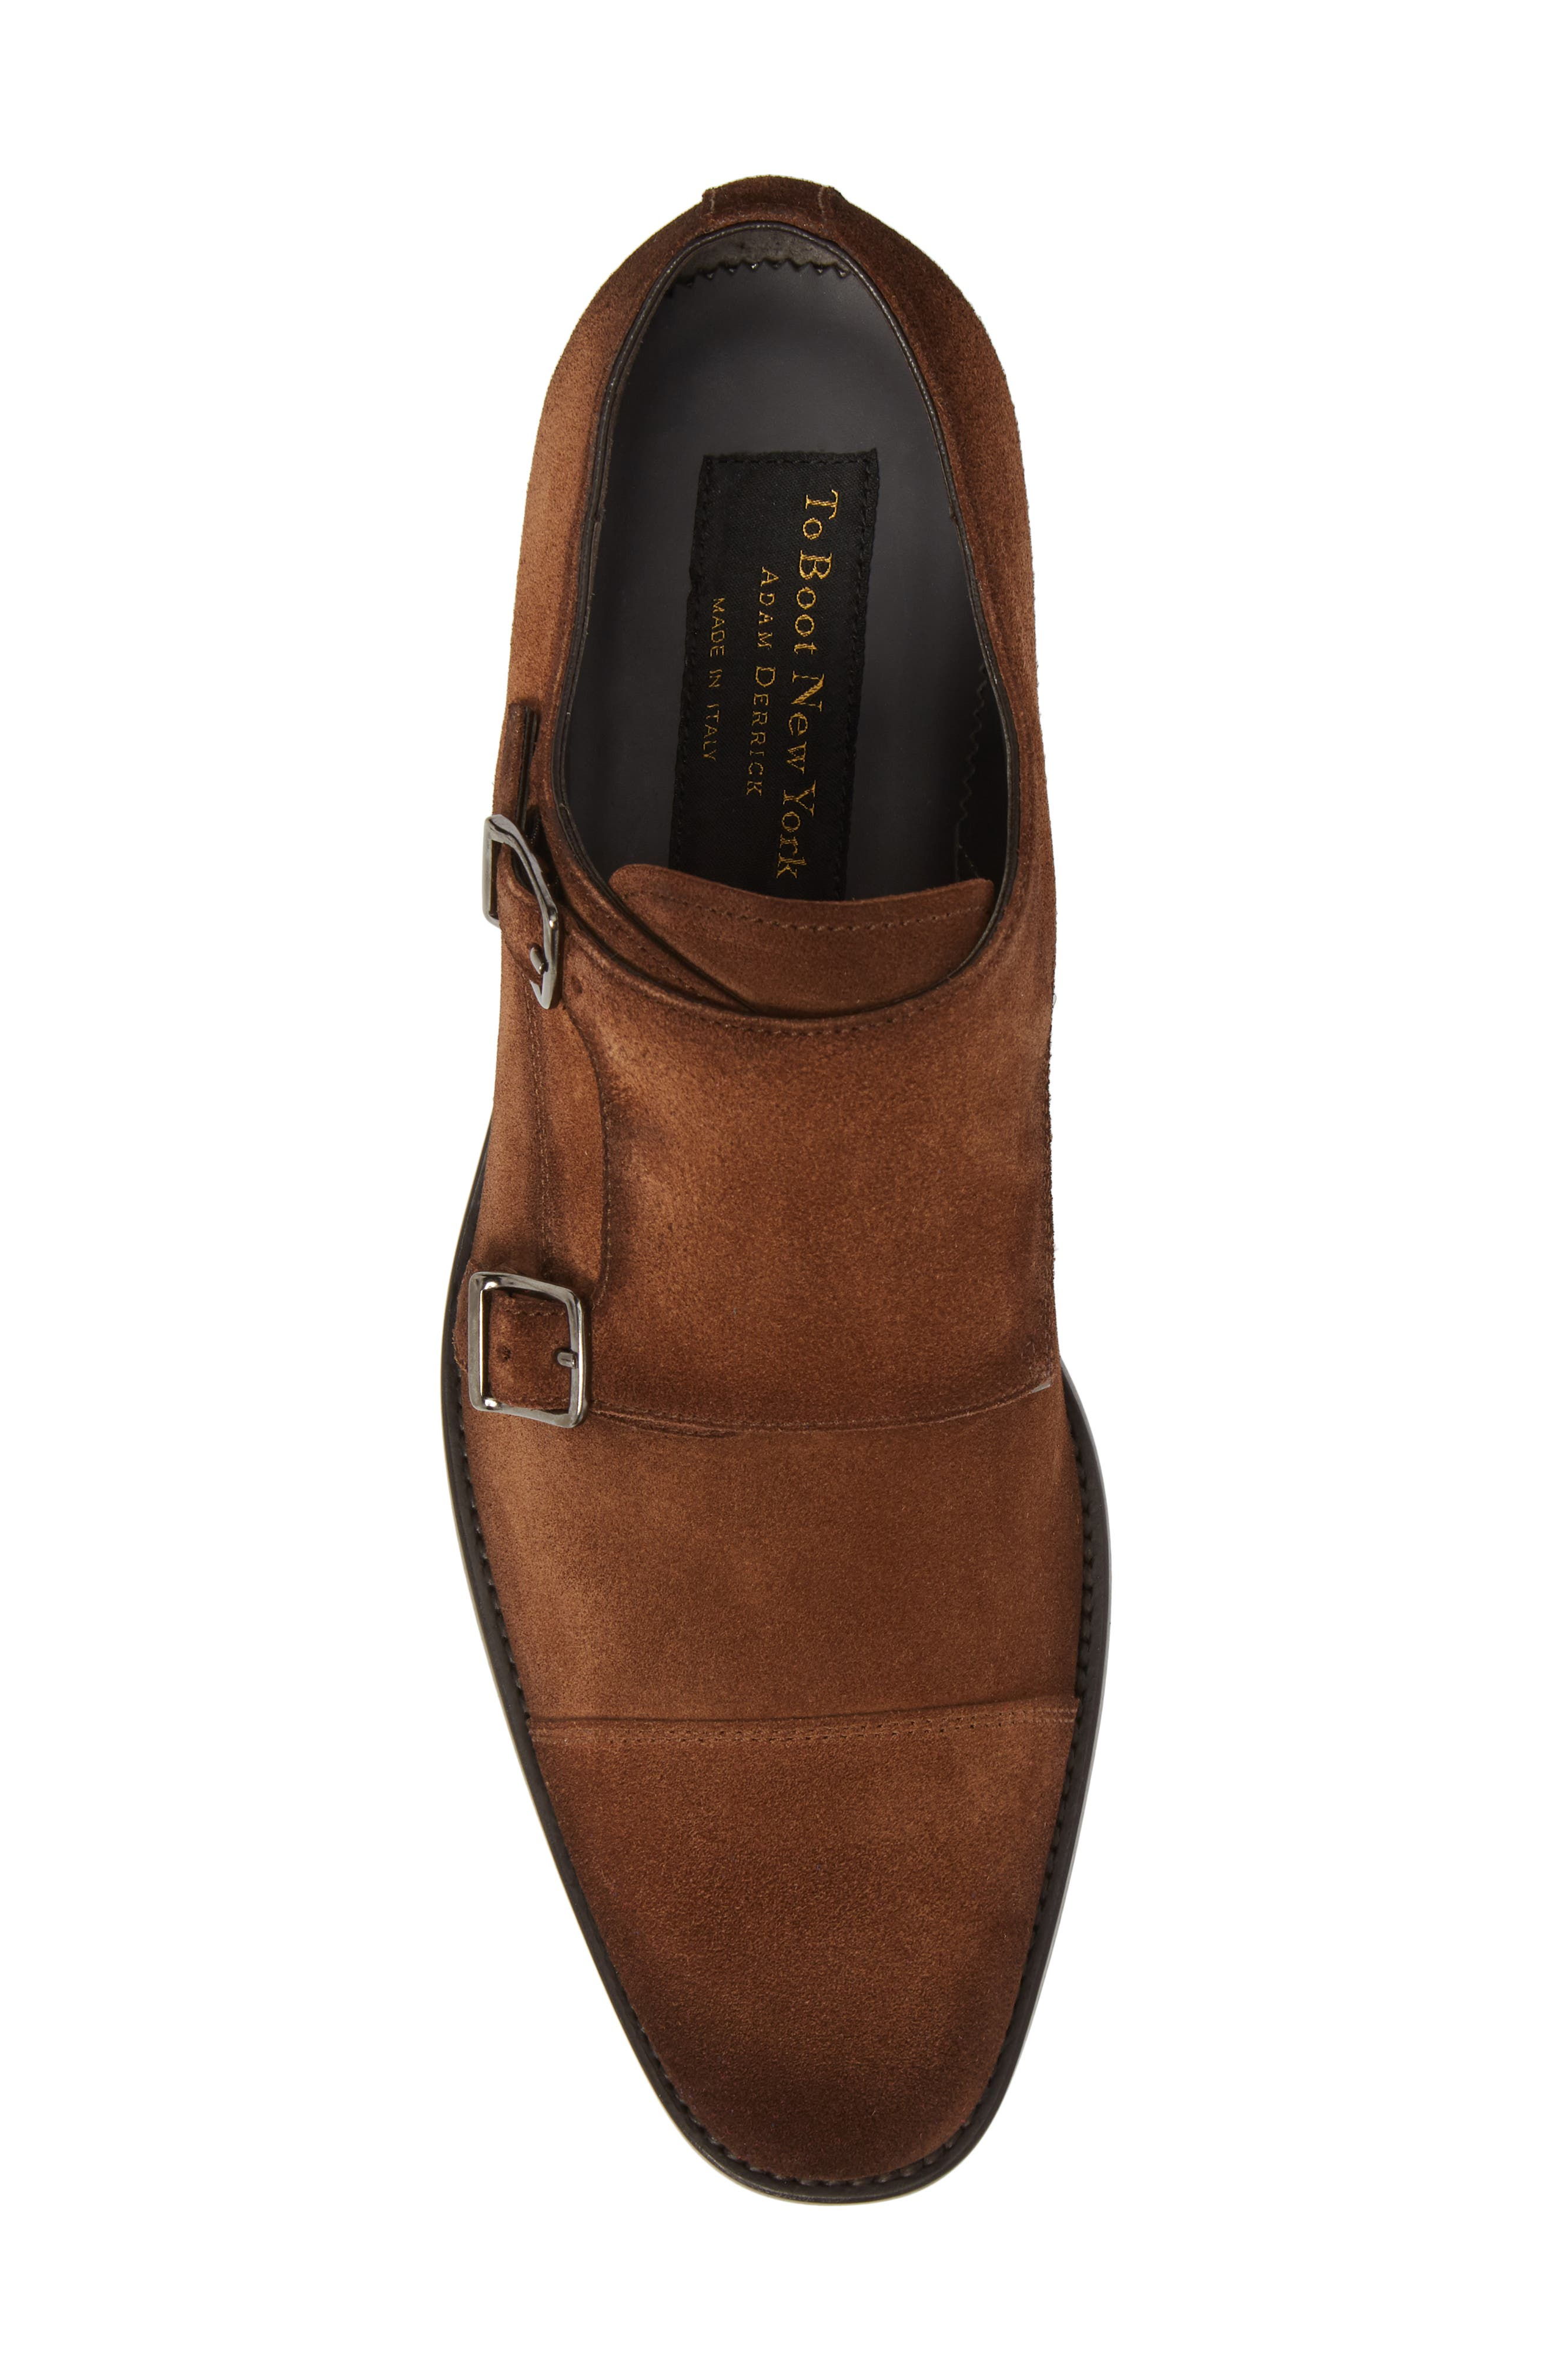 TO BOOT NEW YORK, Quentin Cap Toe Monk Shoe, Alternate thumbnail 5, color, BROWN SUEDE LEATHER